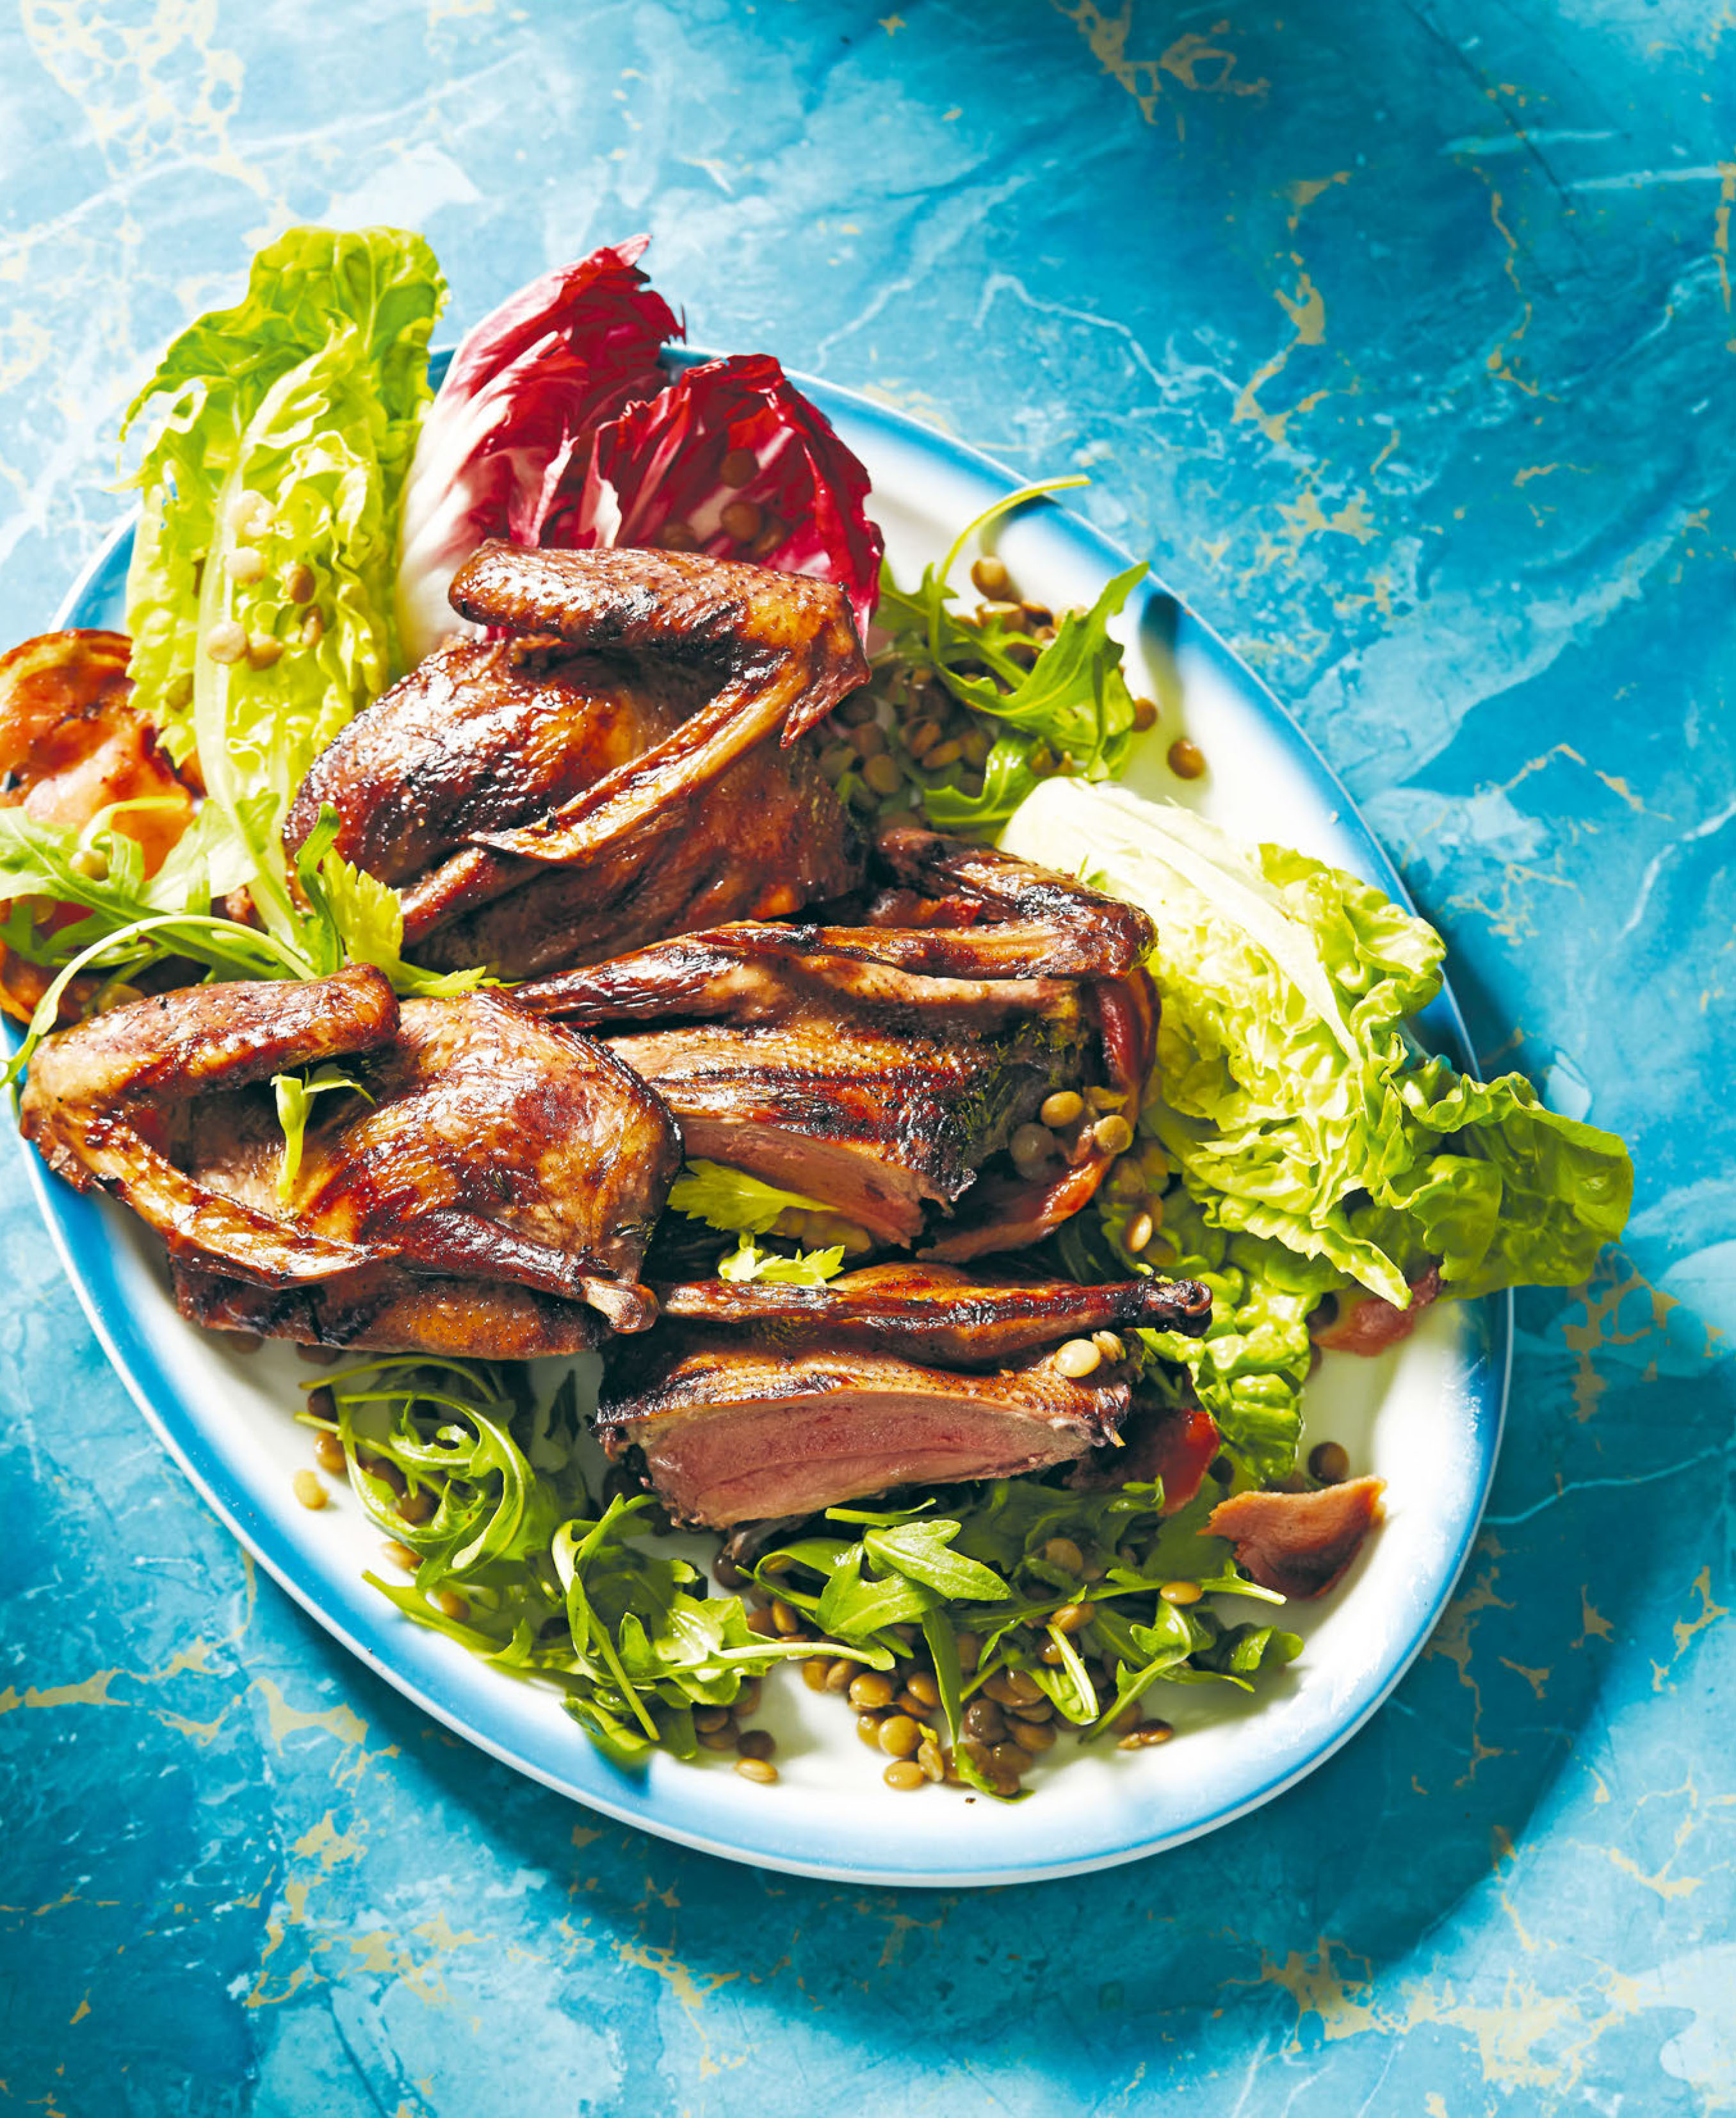 Pigeon, lentil and pancetta salad